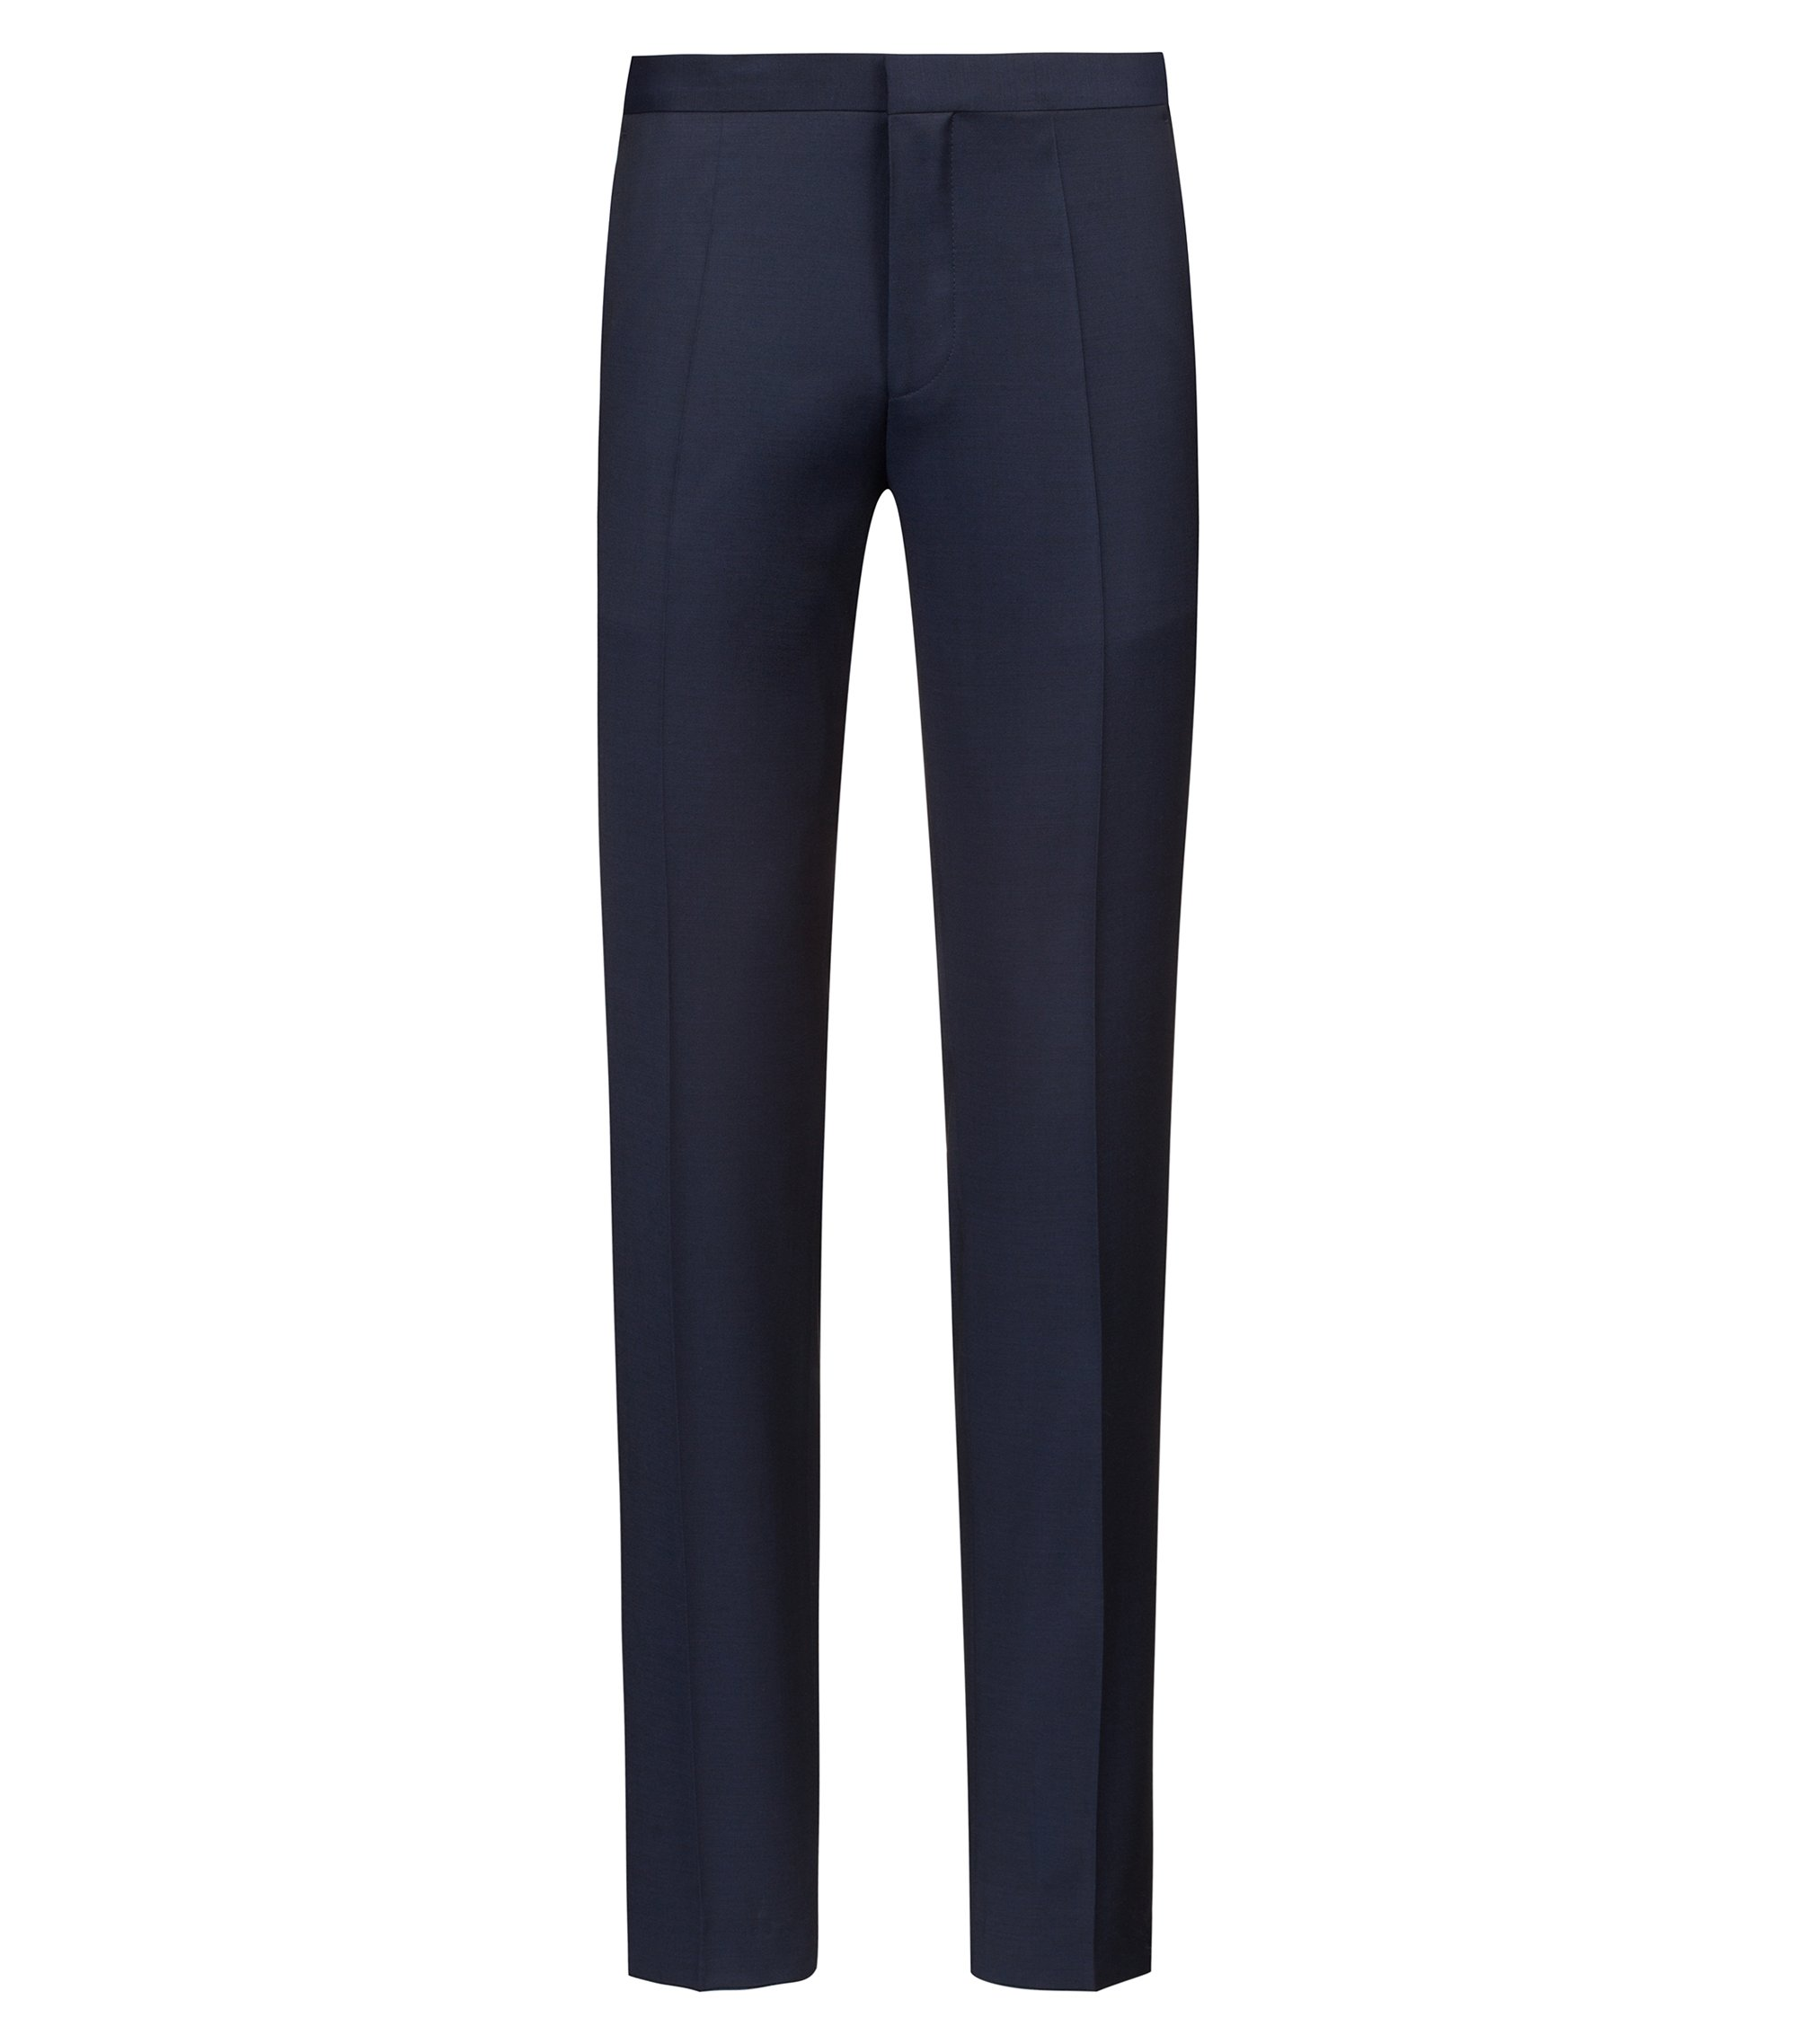 Bits & Bytes Capsule extra-slim-fit trousers in virgin wool twill, Dark Blue